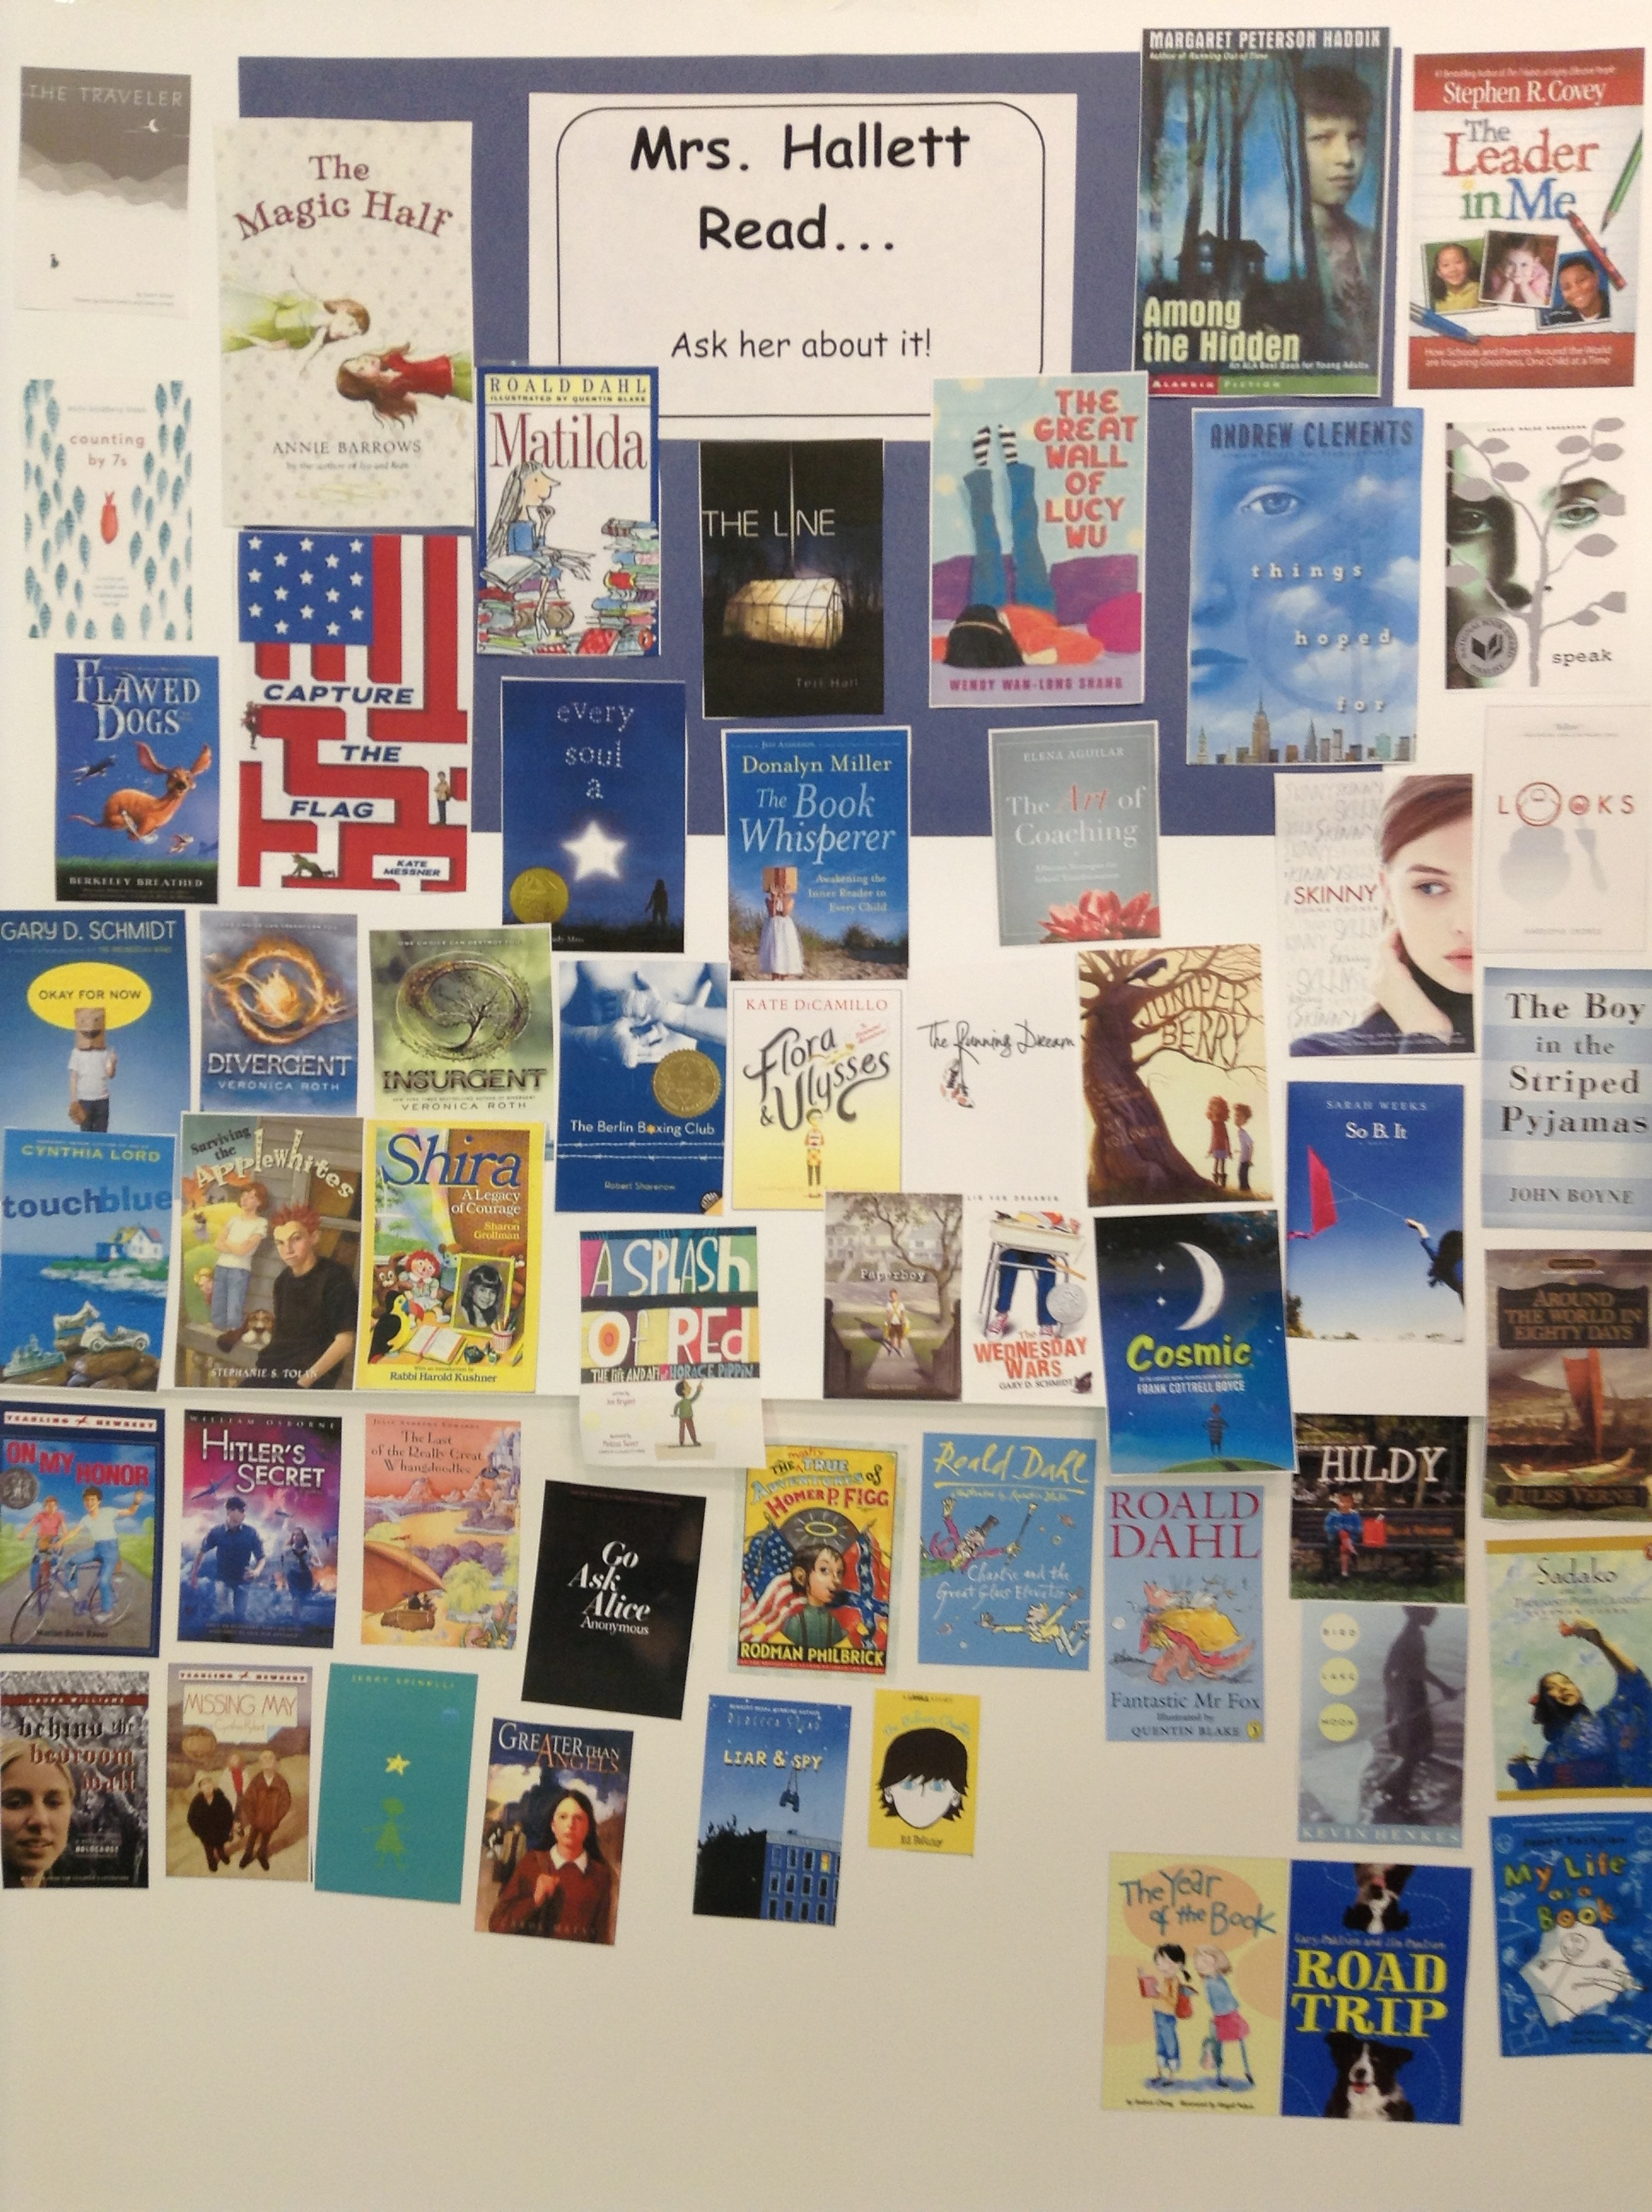 Book Cover Collage Poster : Books by their covers book sharing with personal collages